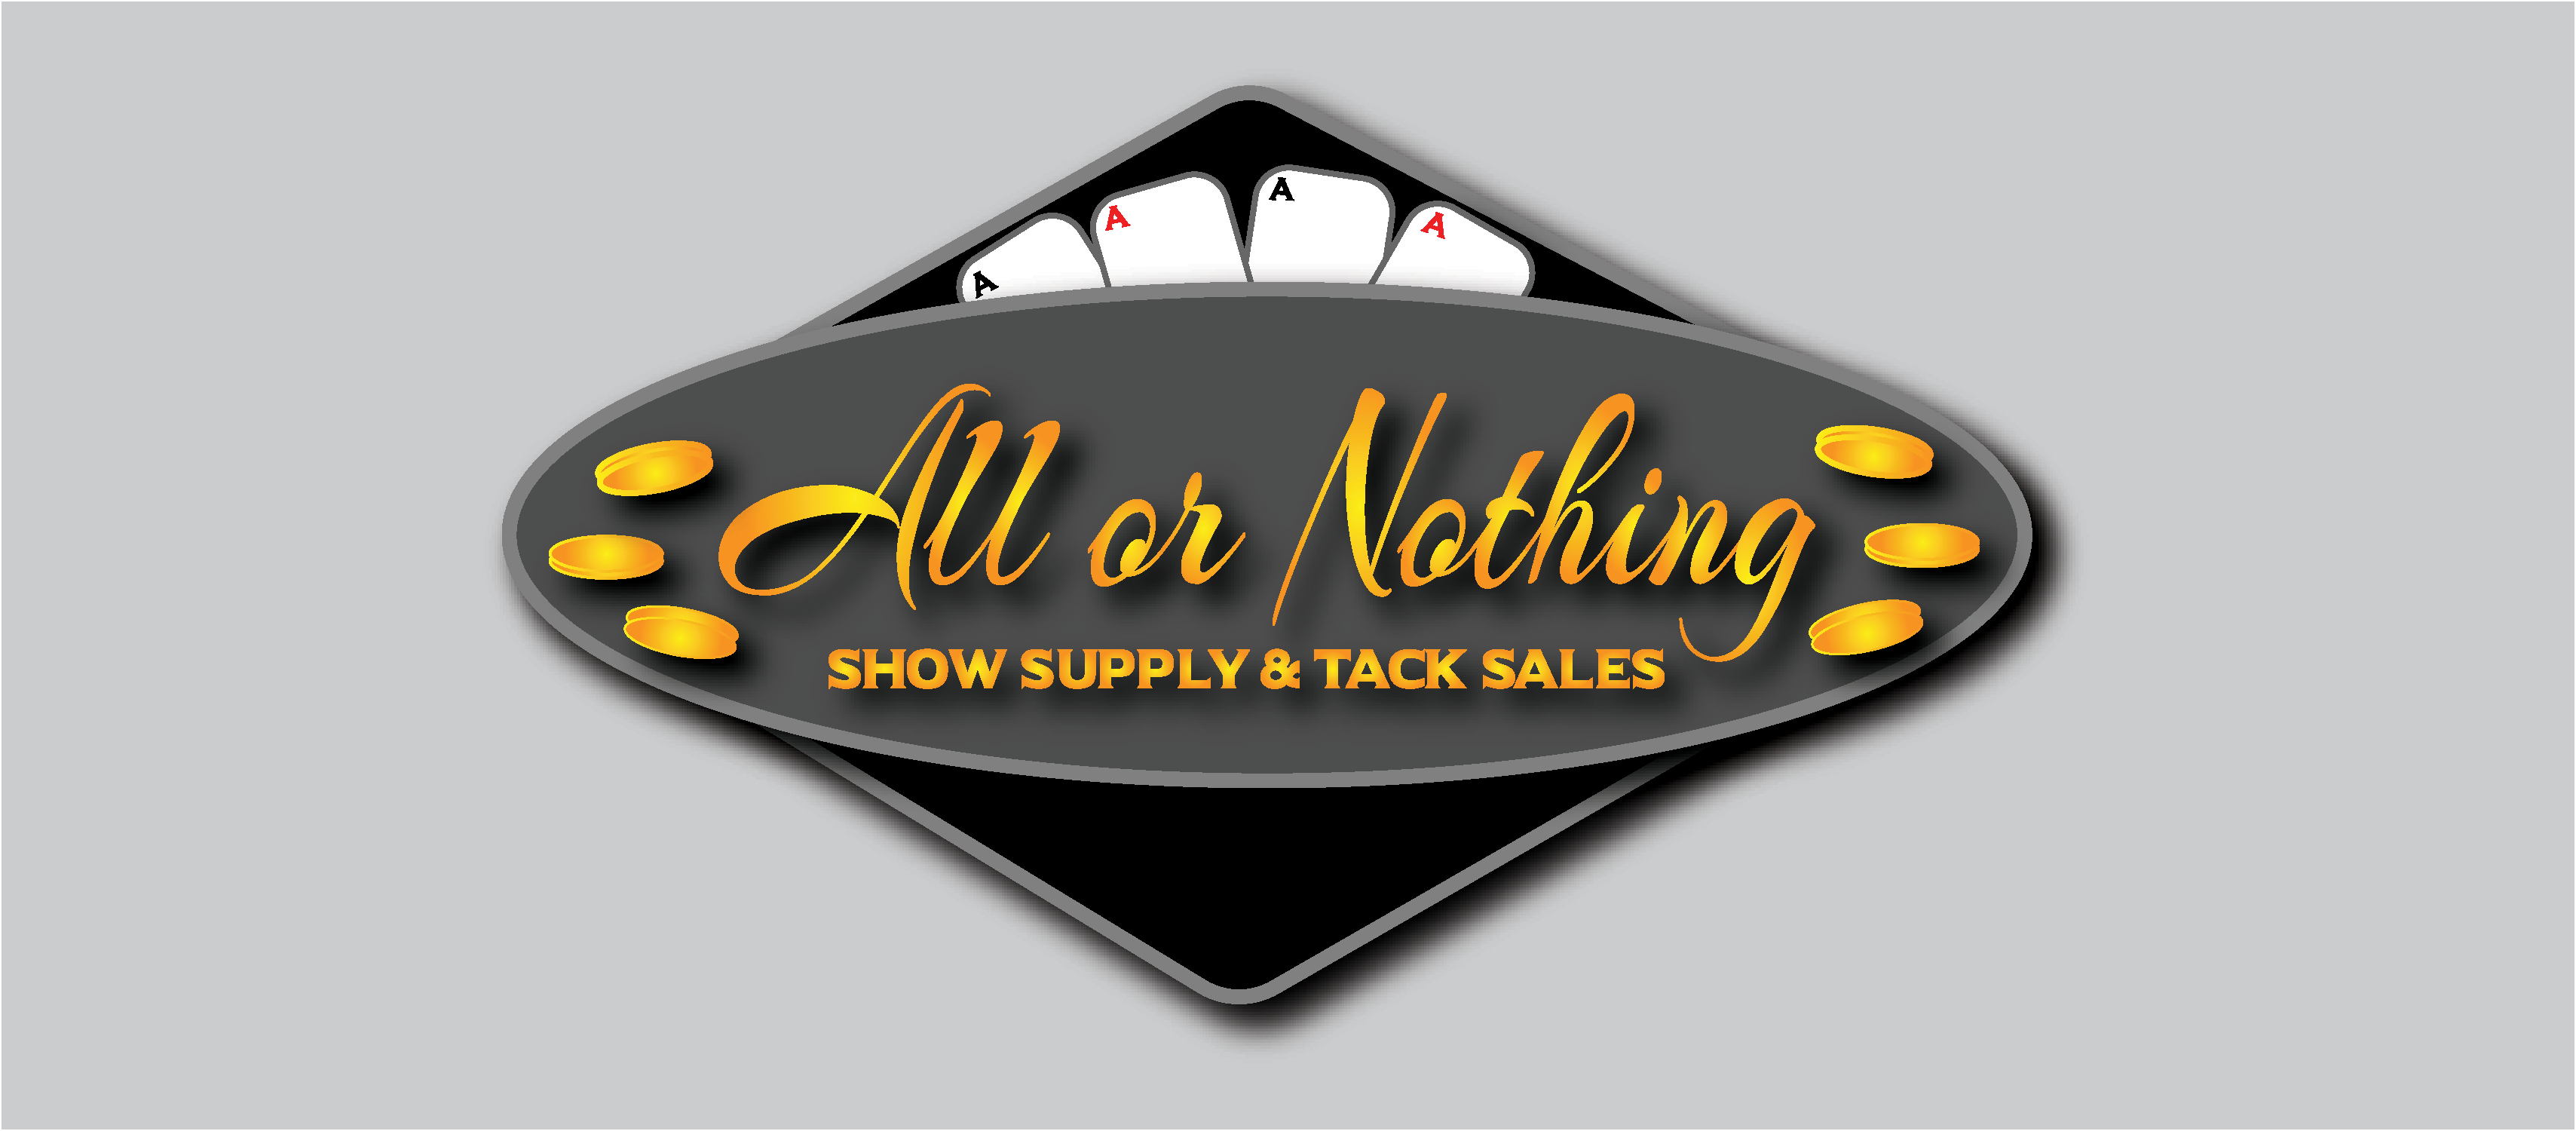 All or Nothing Show Supply & Tack Sales